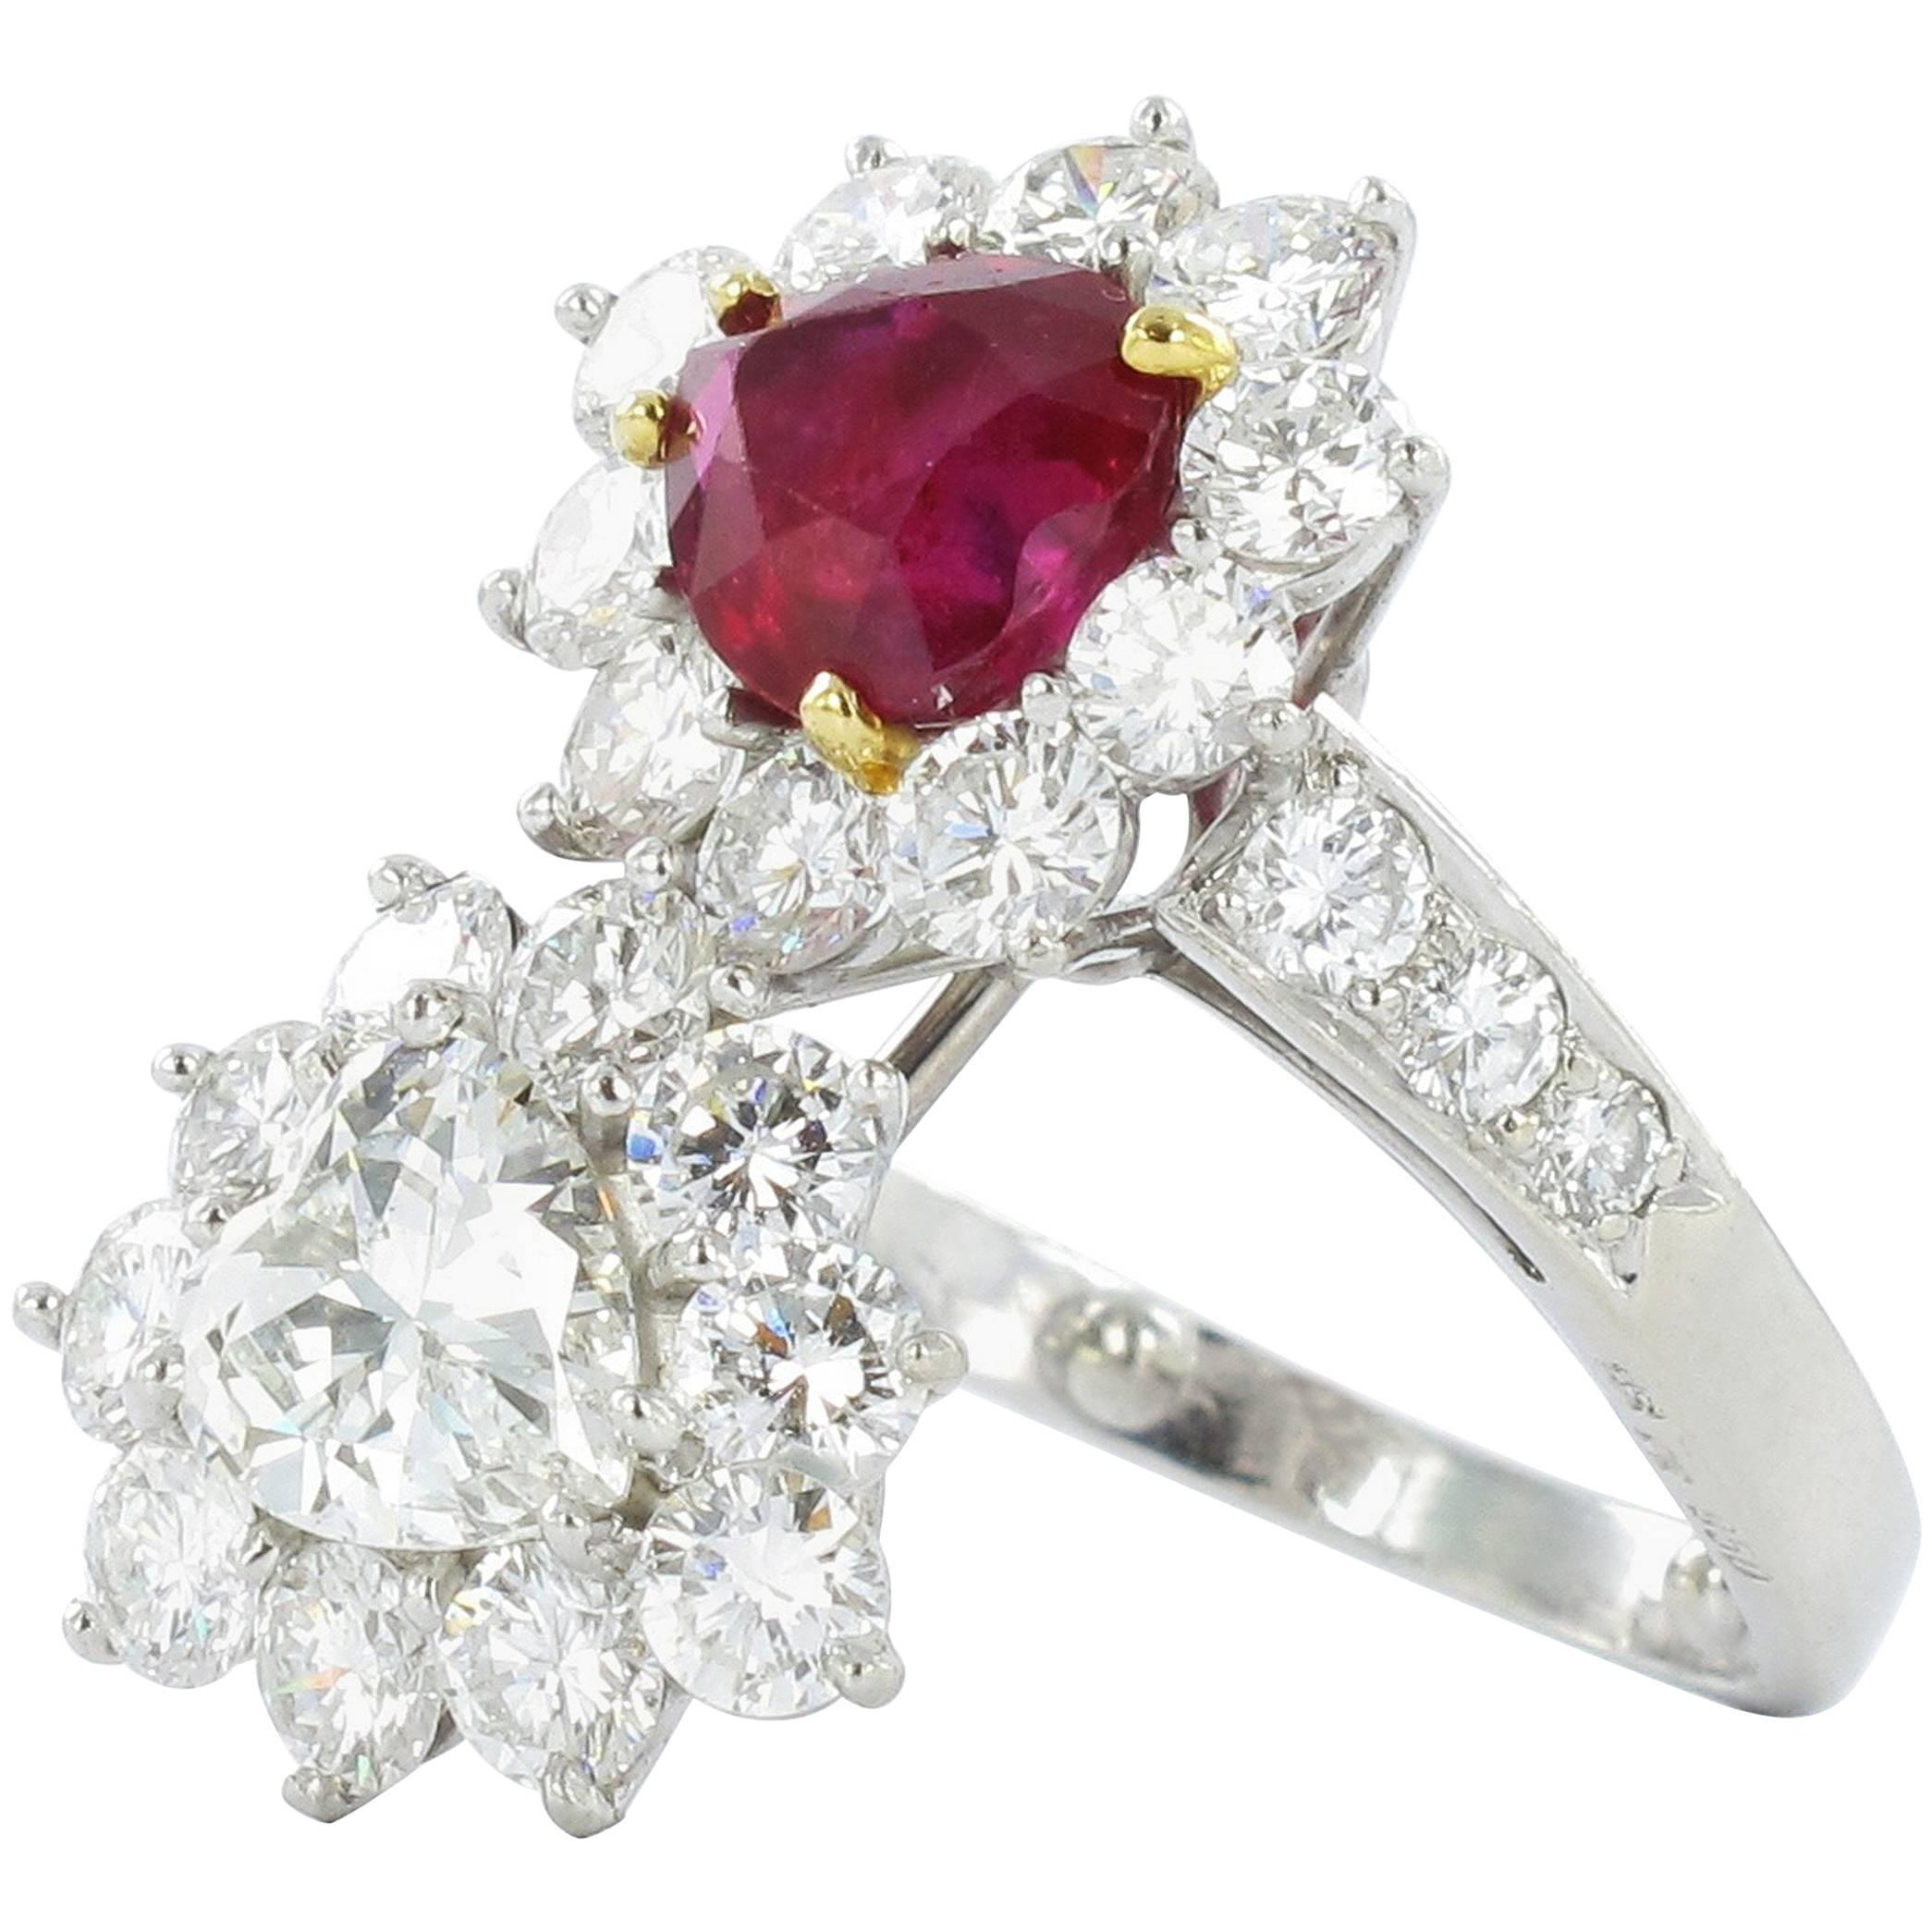 Gübelin Report Burma Ruby Diamond Toi et Moi Platinum Ring